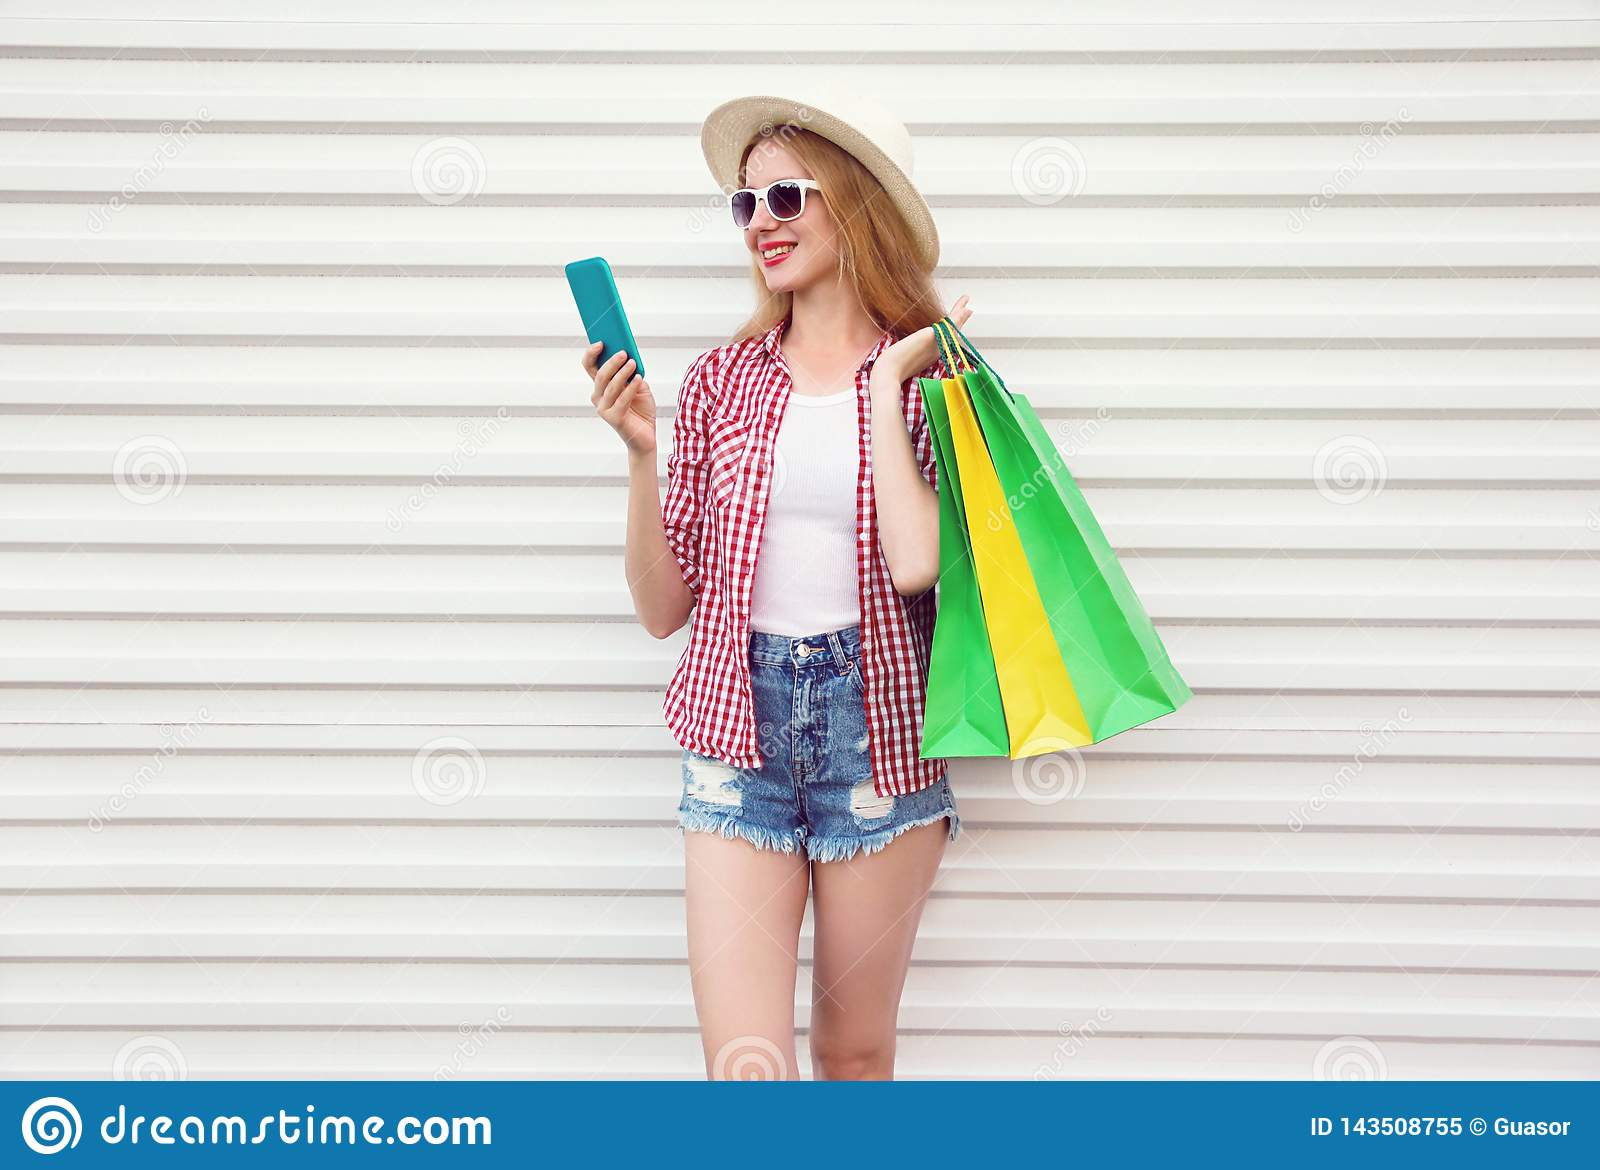 Happy smiling young woman with phone, holding colorful shopping bags in summer round straw hat, checkered shirt, shorts on white